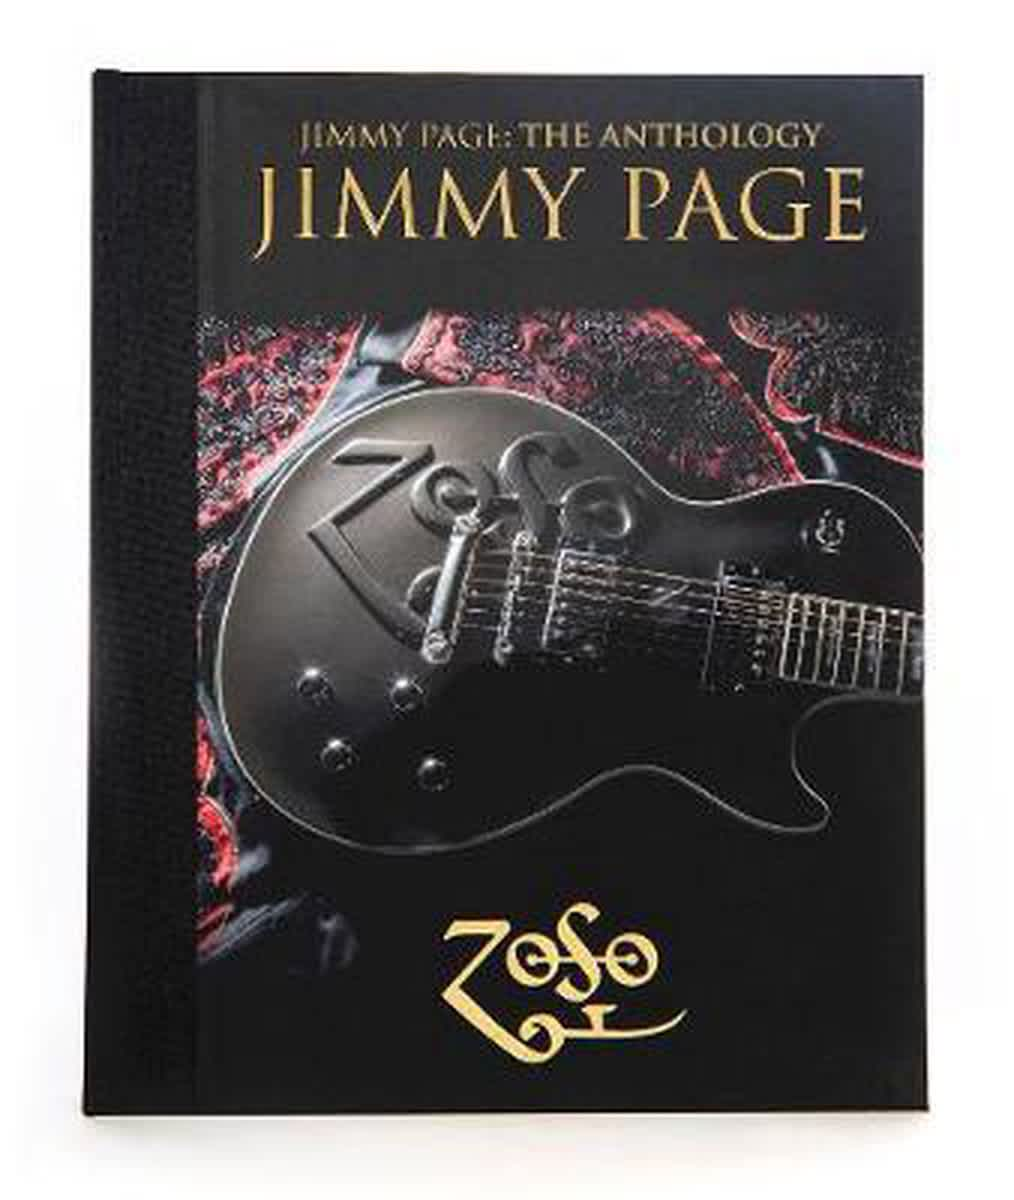 jimmy-page-the-anthology